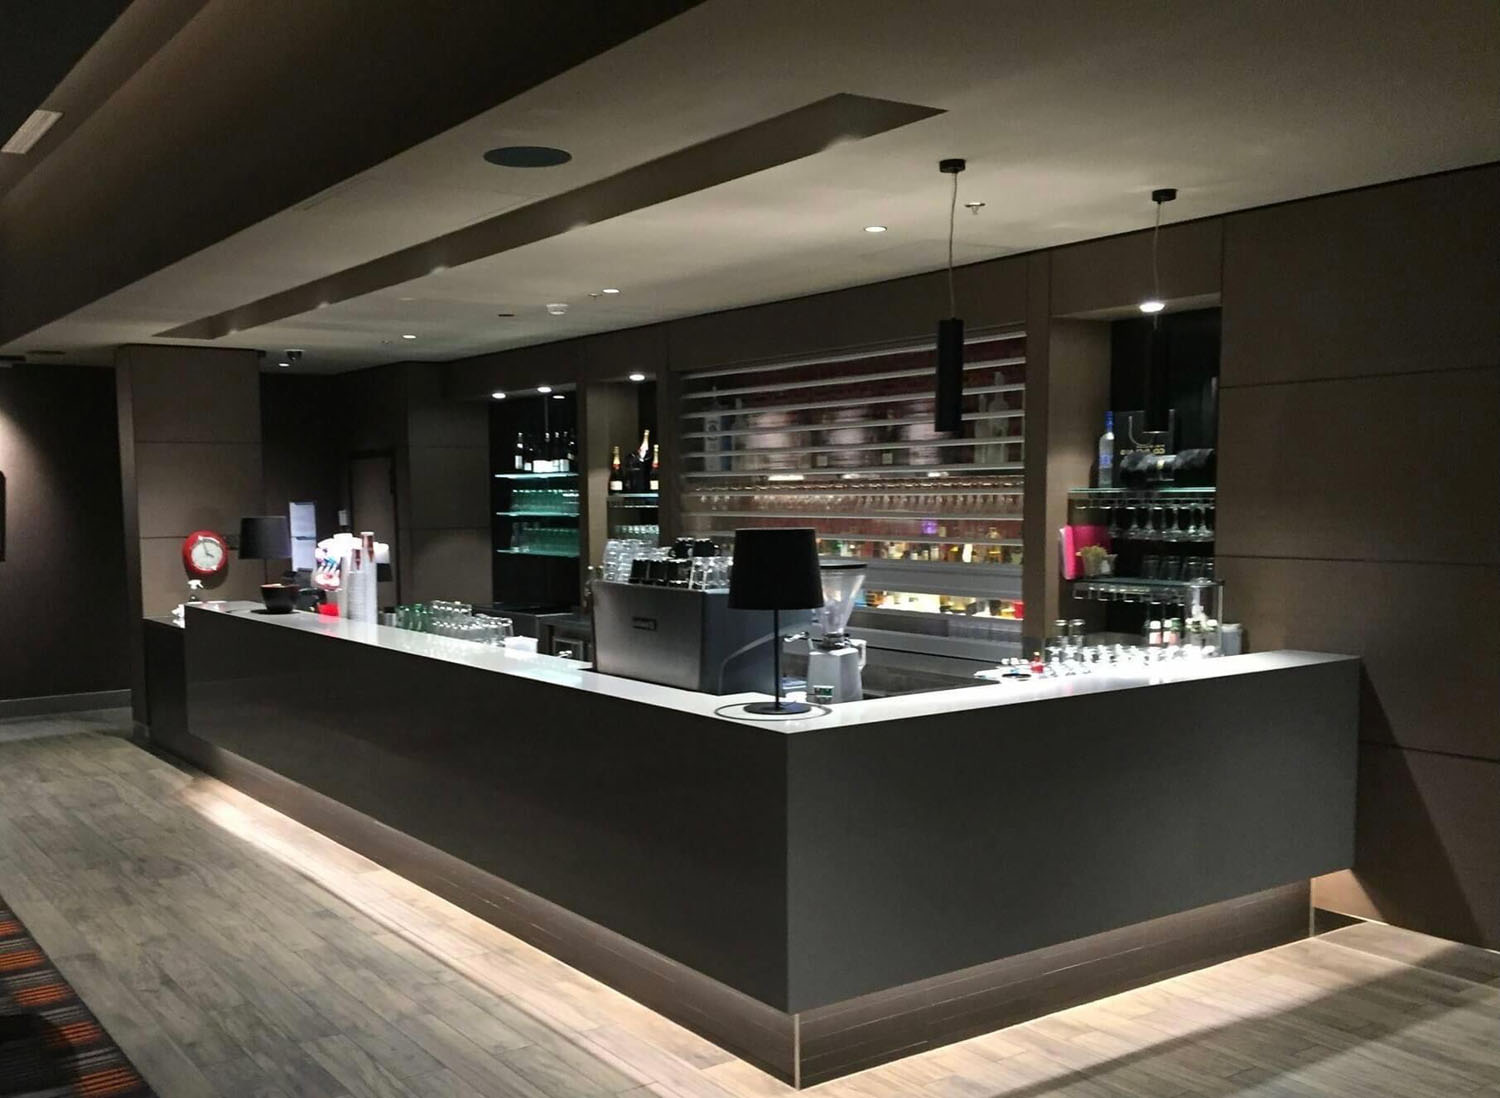 Newcastle Shop Fitters spaces